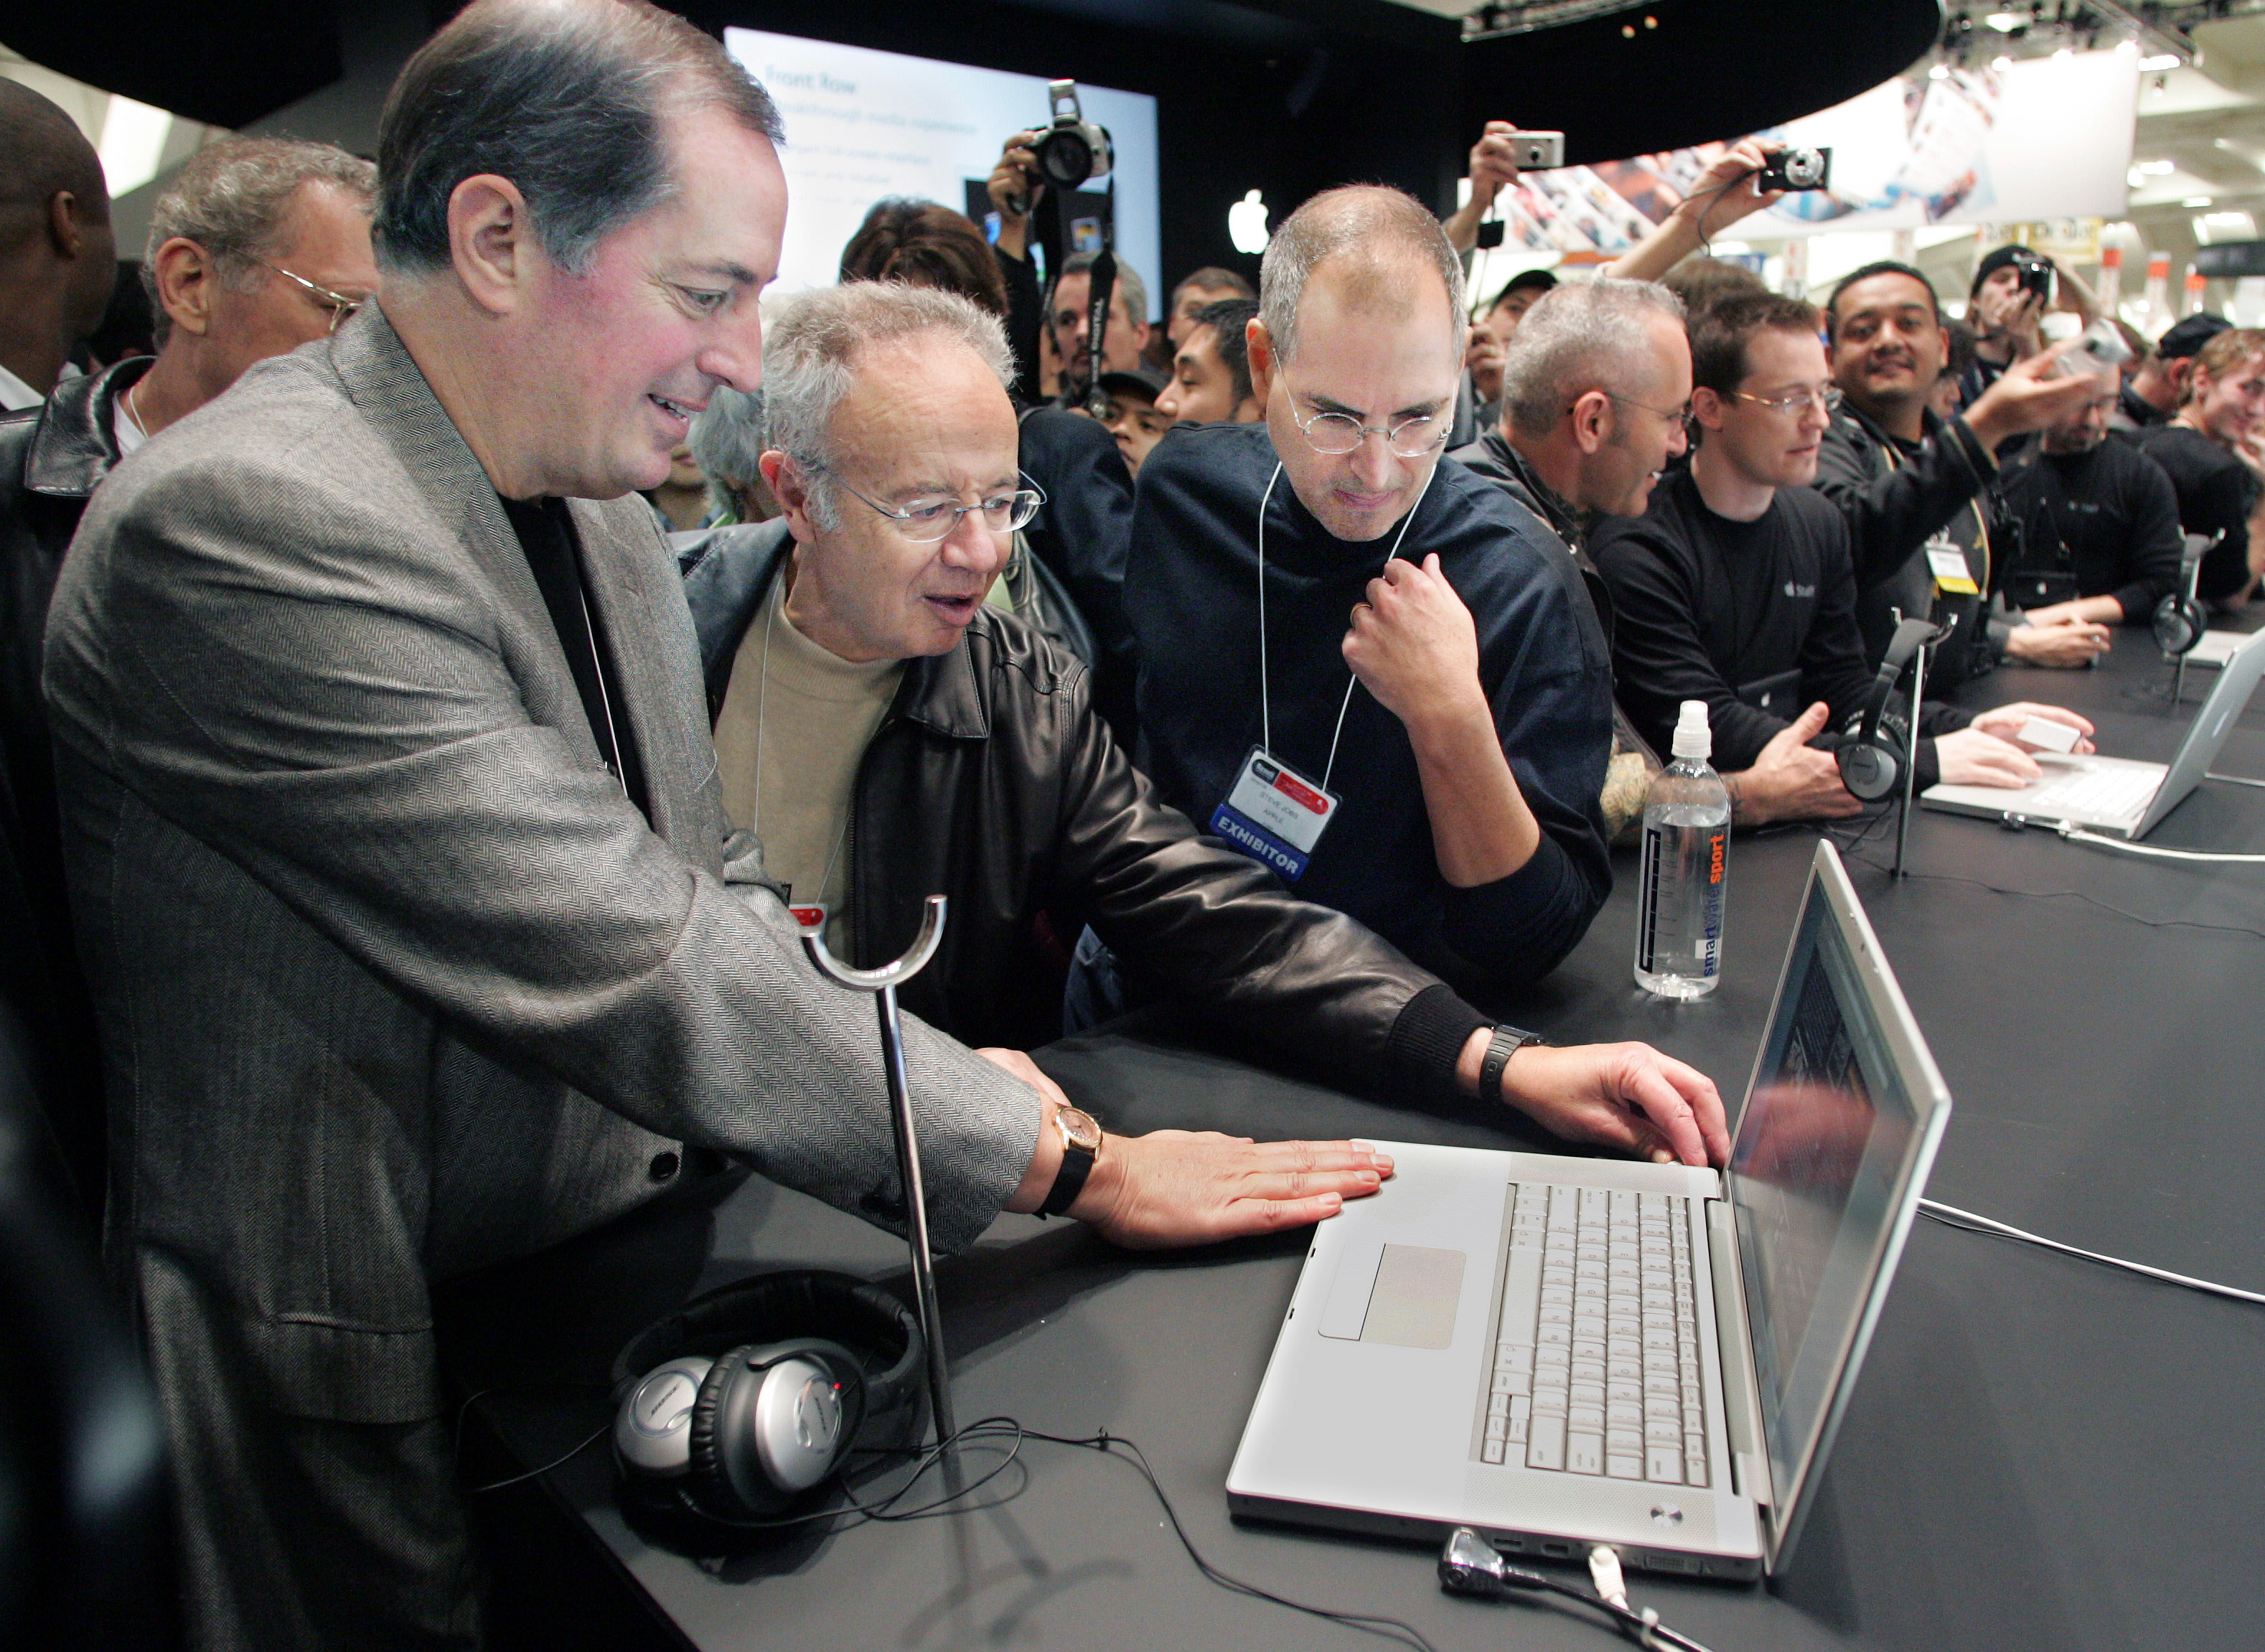 Apple CEO Jobs shows Intel CEO Otellini and former CEO Grove new MacBook Pro at Macworld